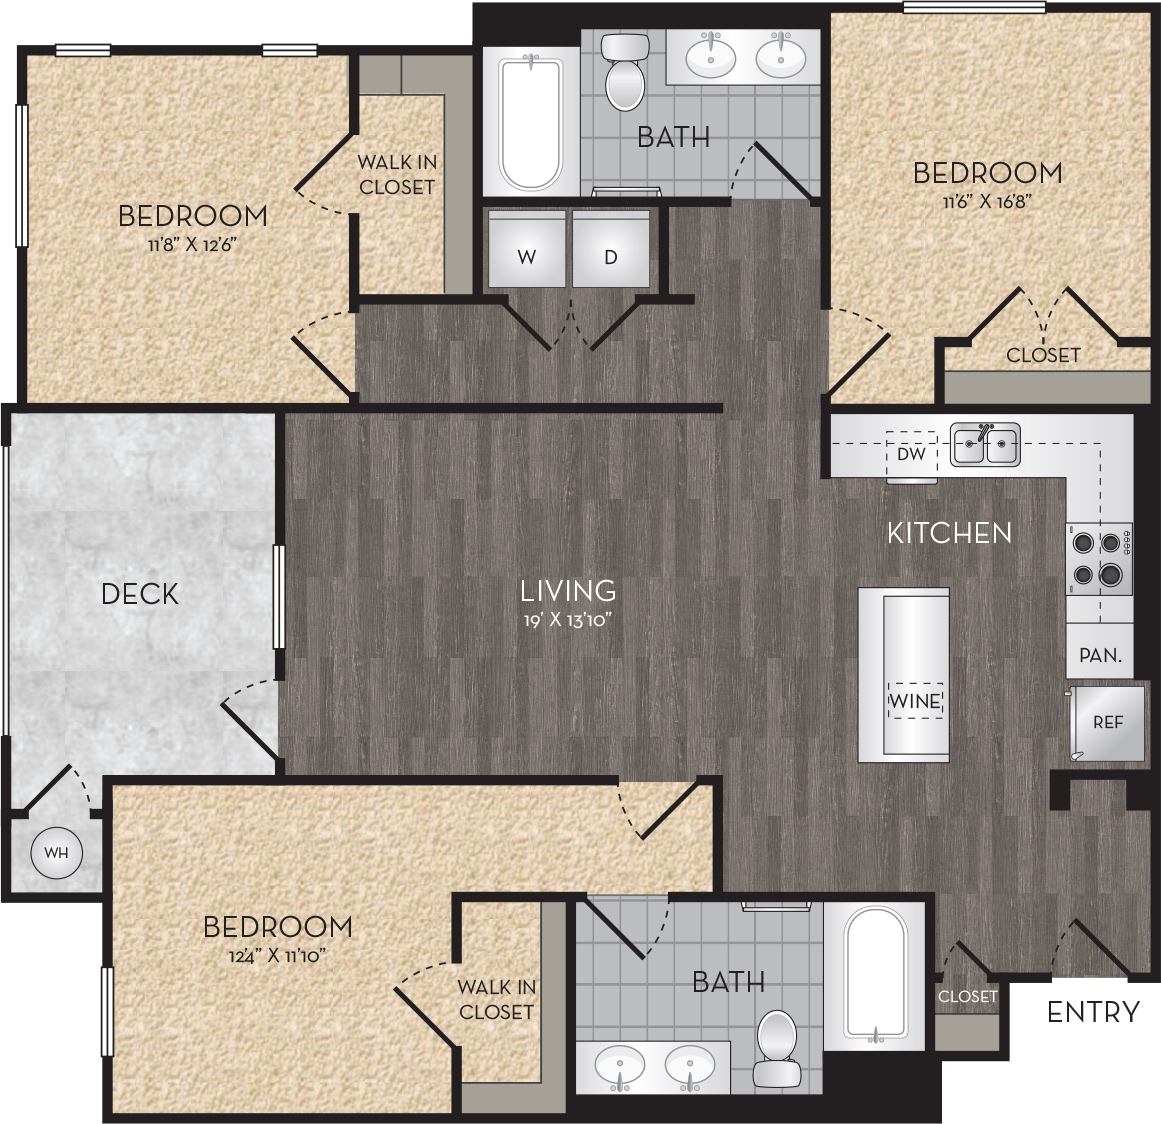 Plan C1 - 3 Bedroom, 2 Bath Floor Plan